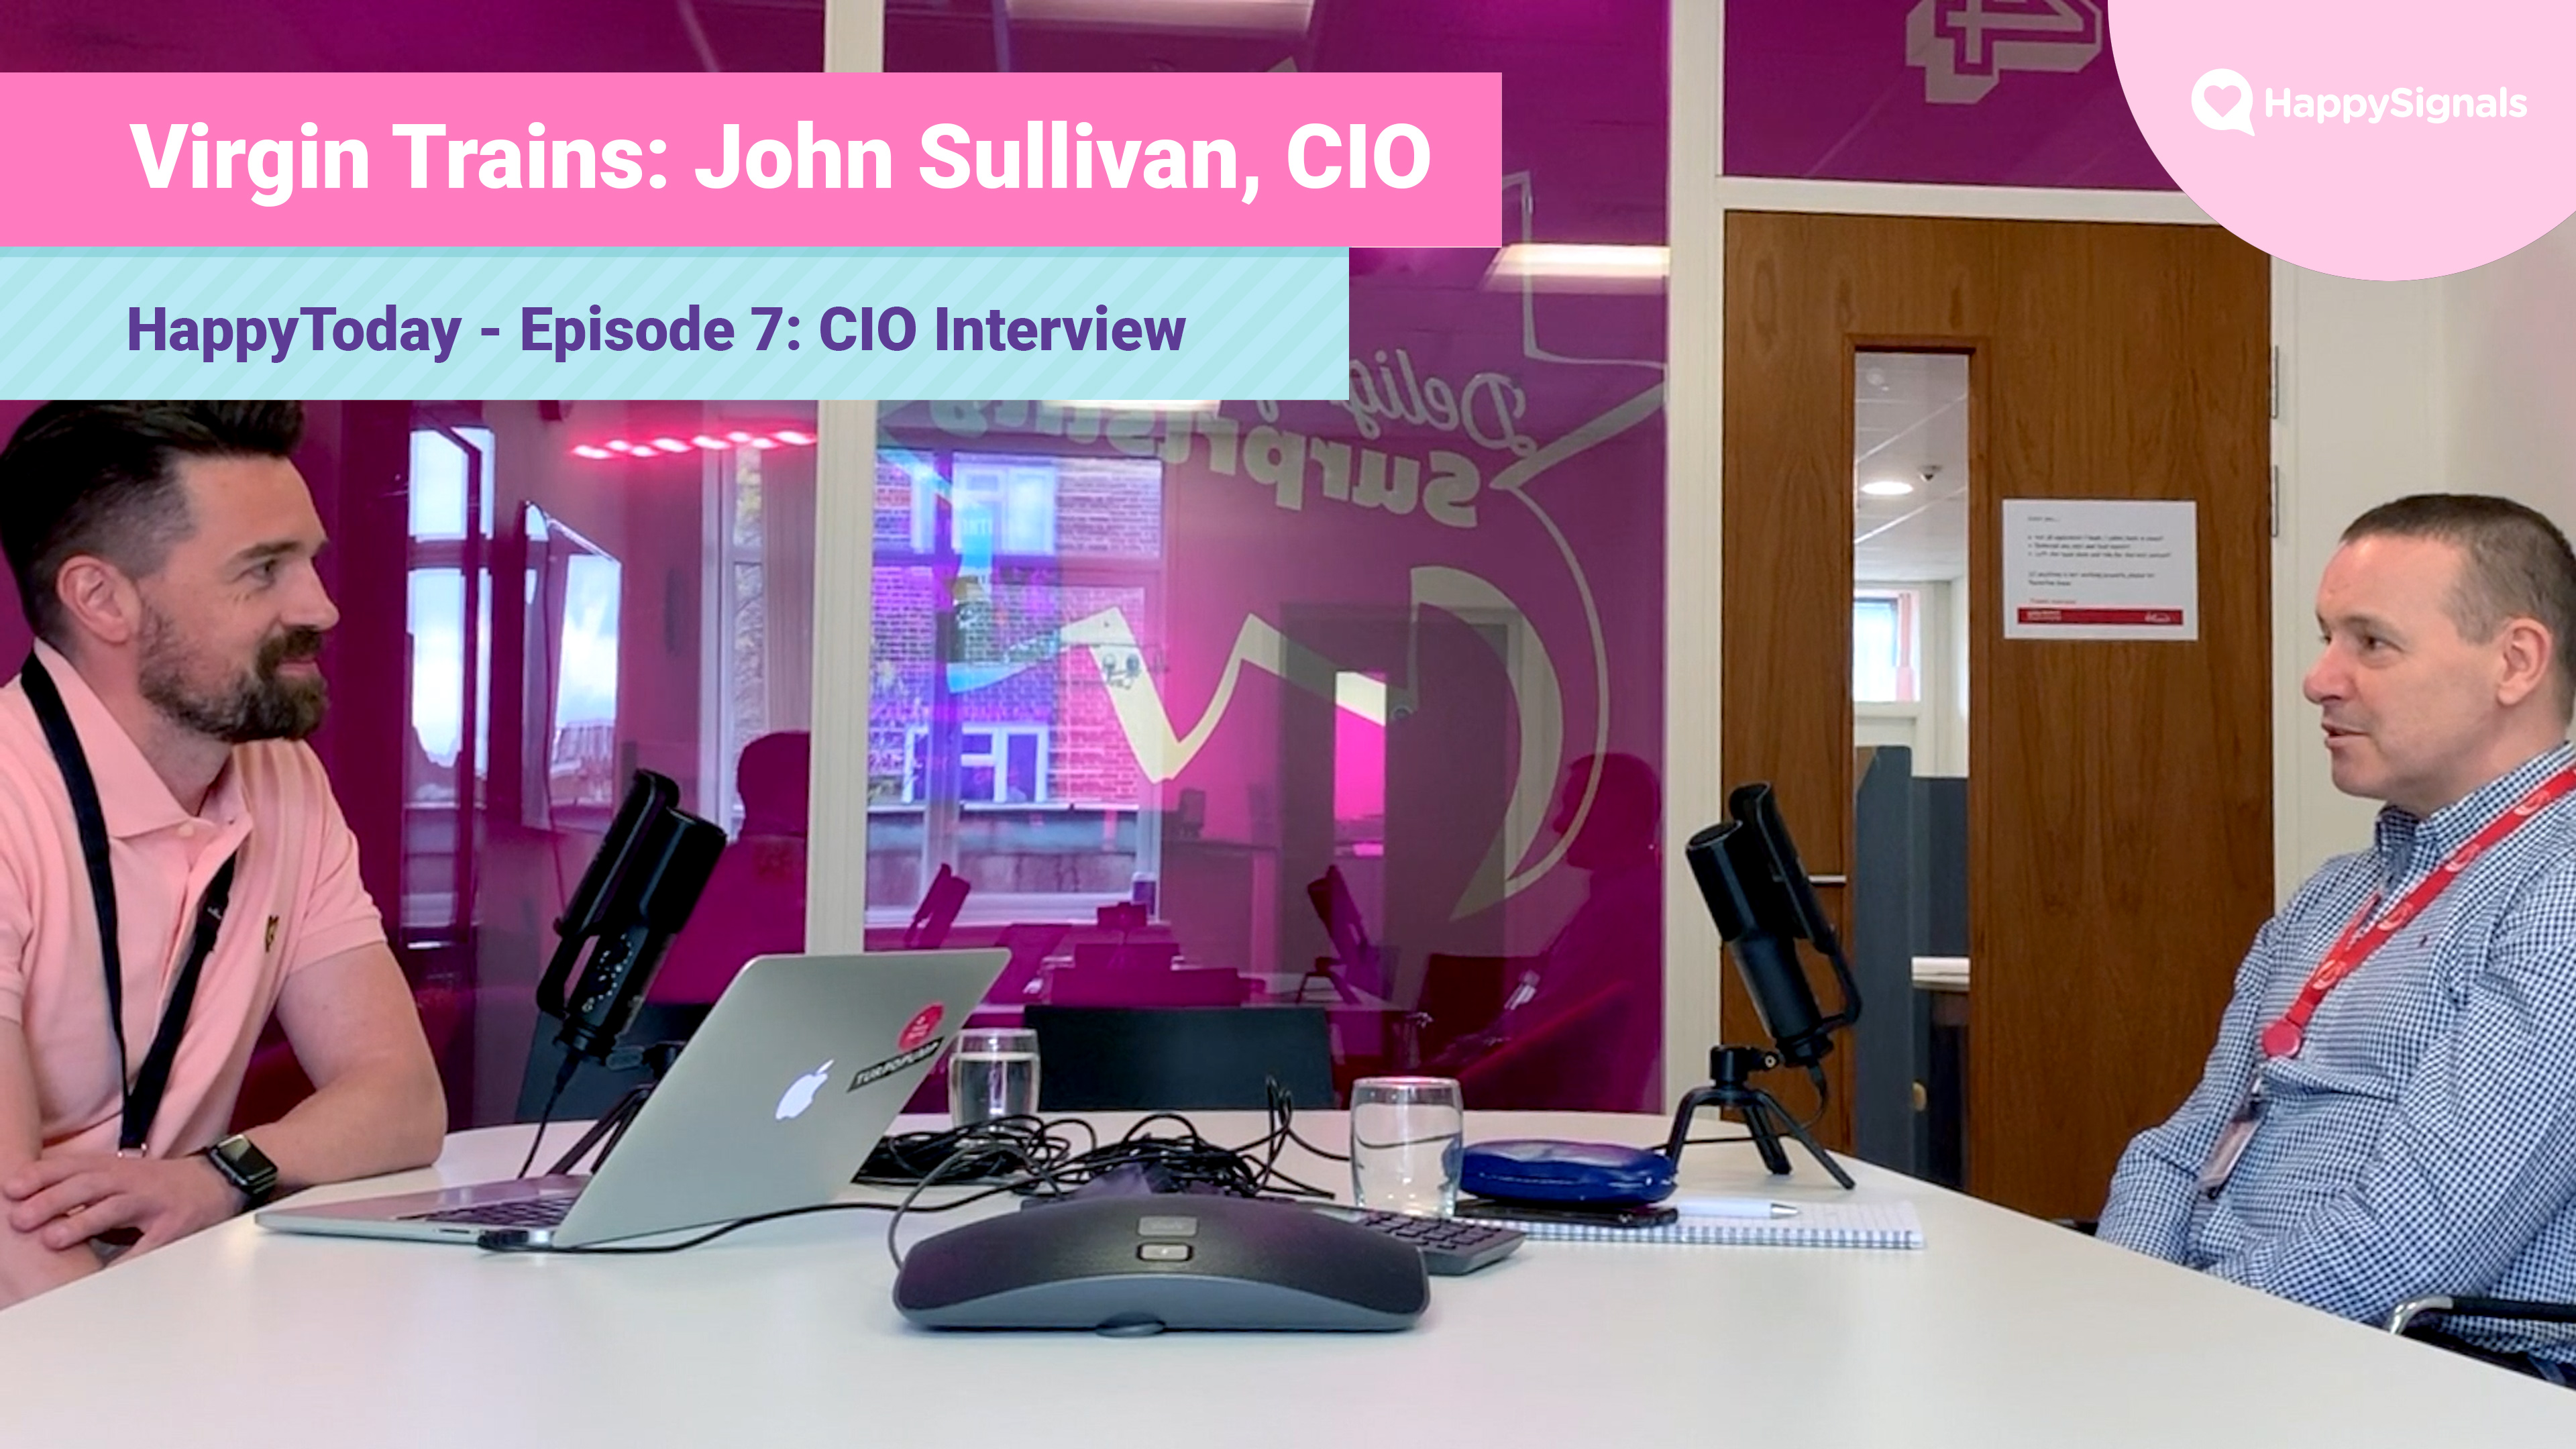 7.-CIO-Interview---Virgin-Trains,-John-Sullivan